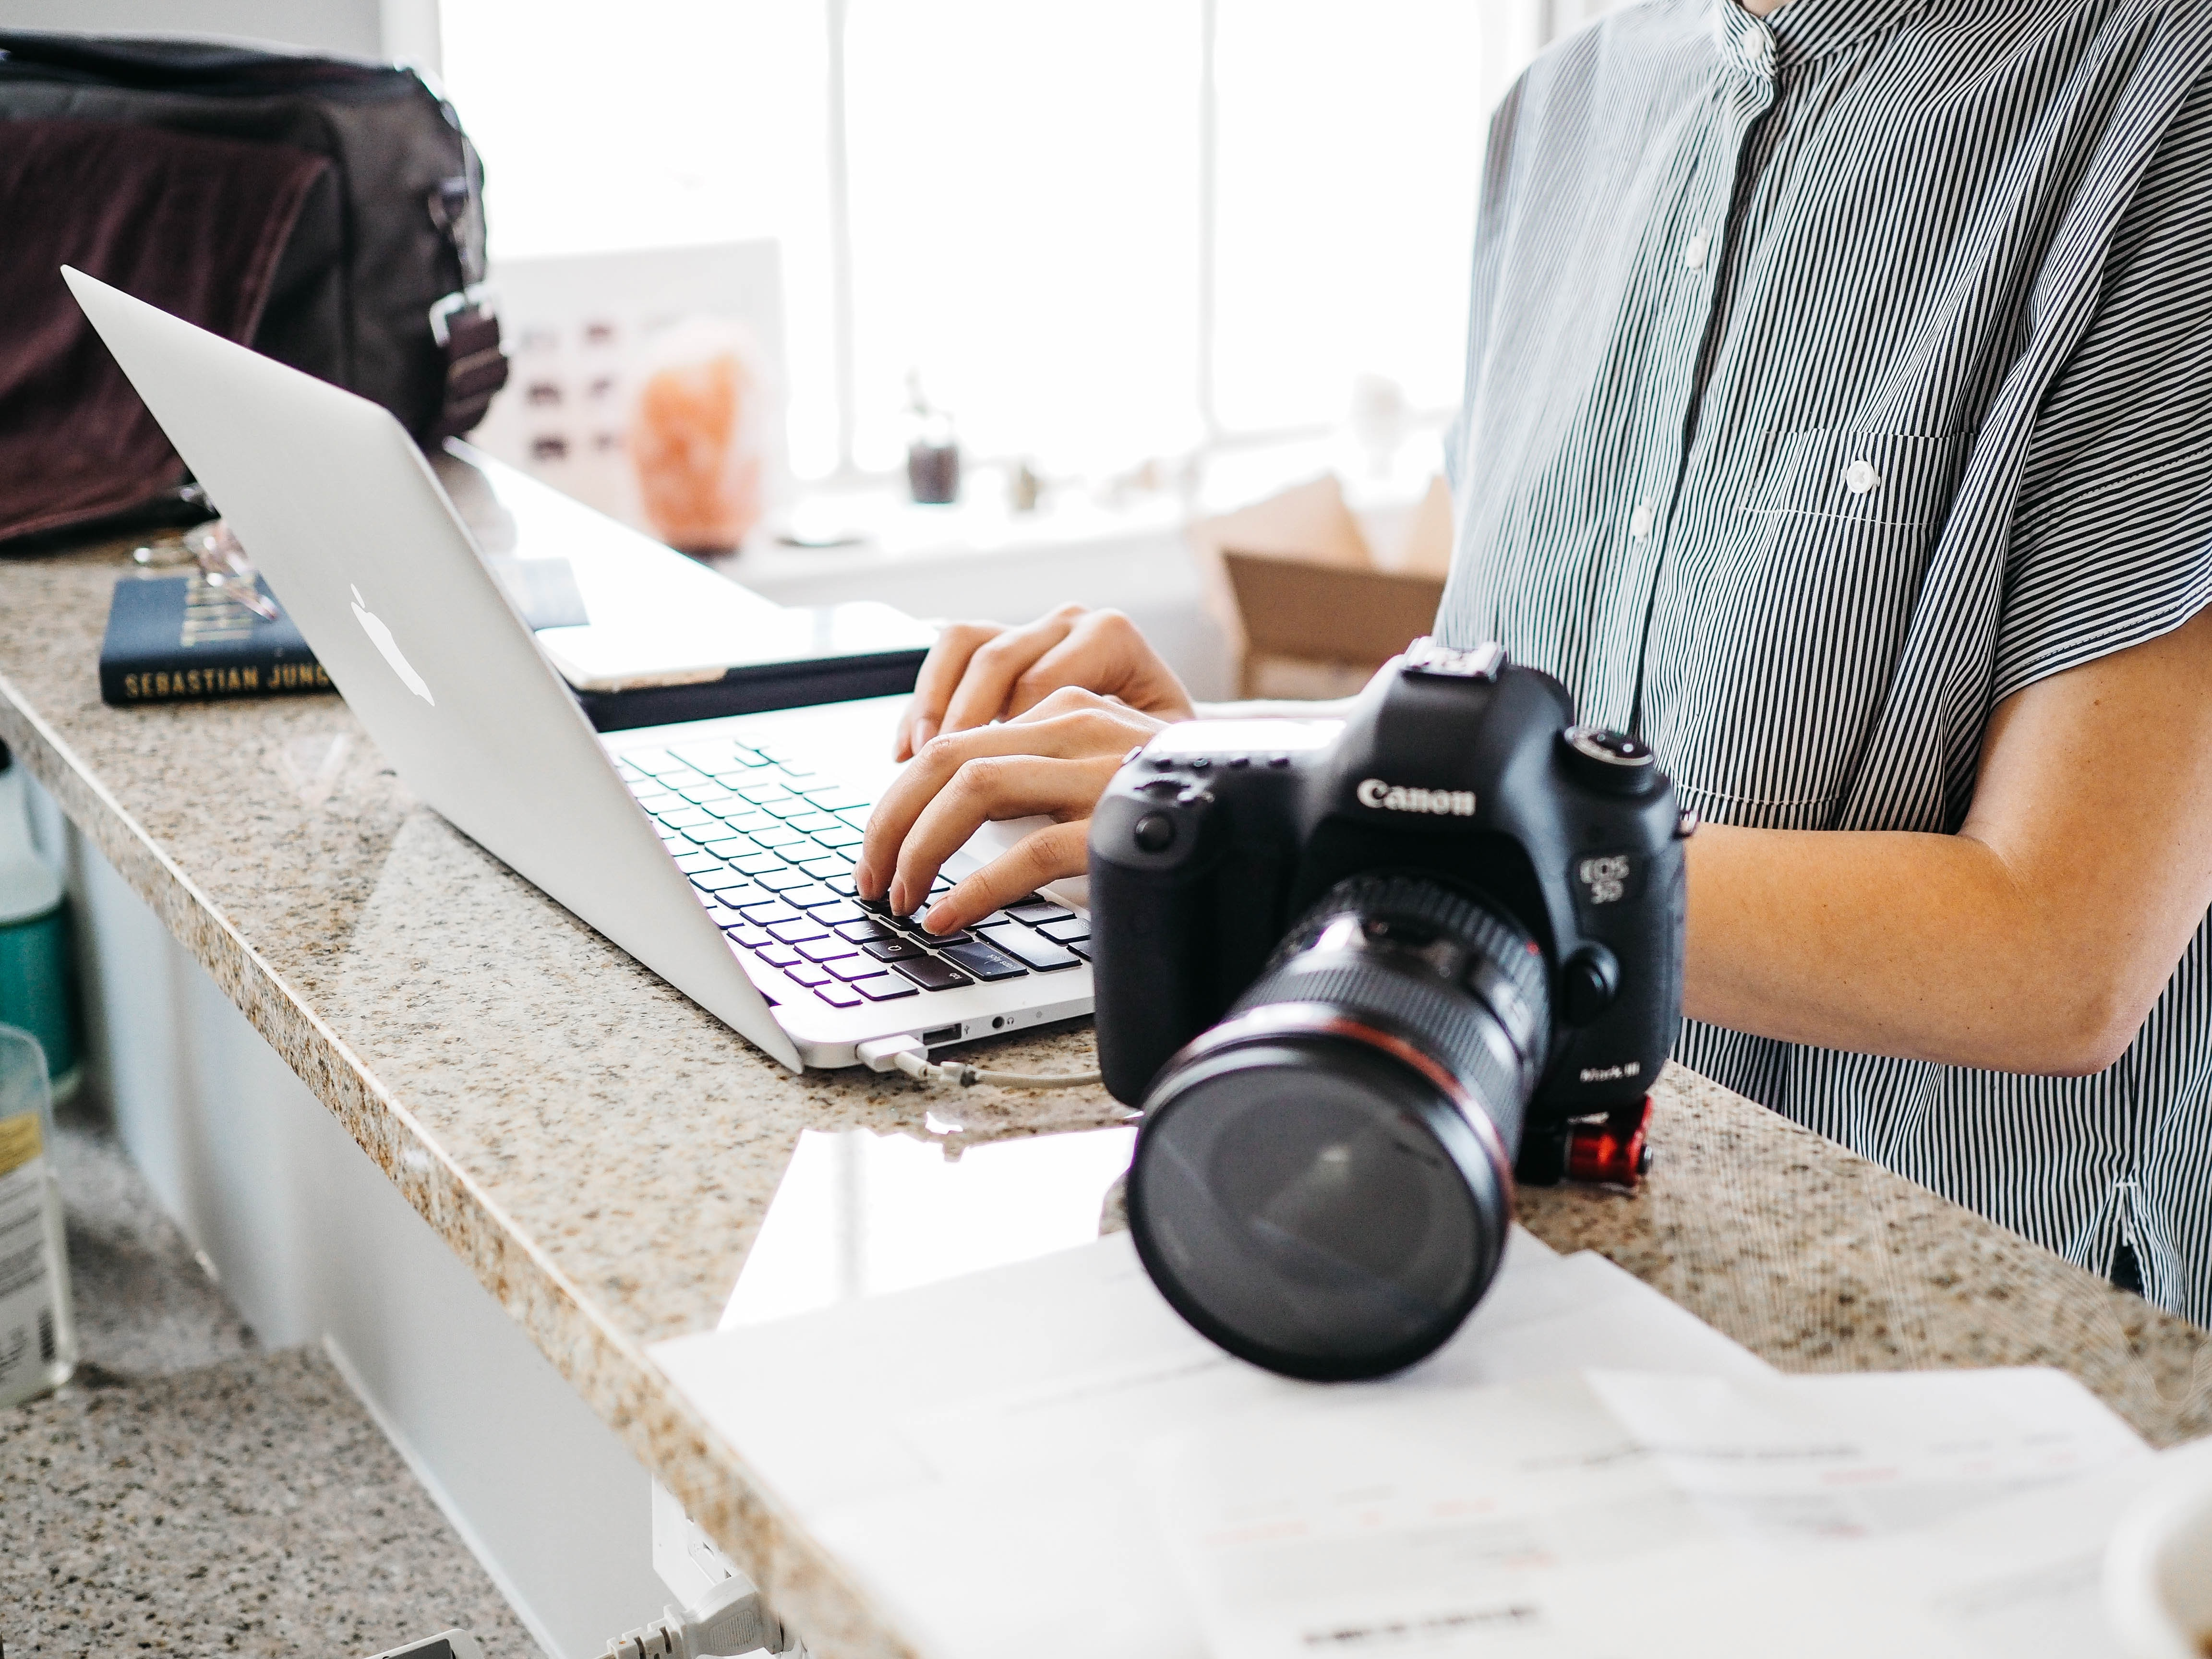 Take your photography business to a new level; sign up for private coaching session for photographers and creatives.